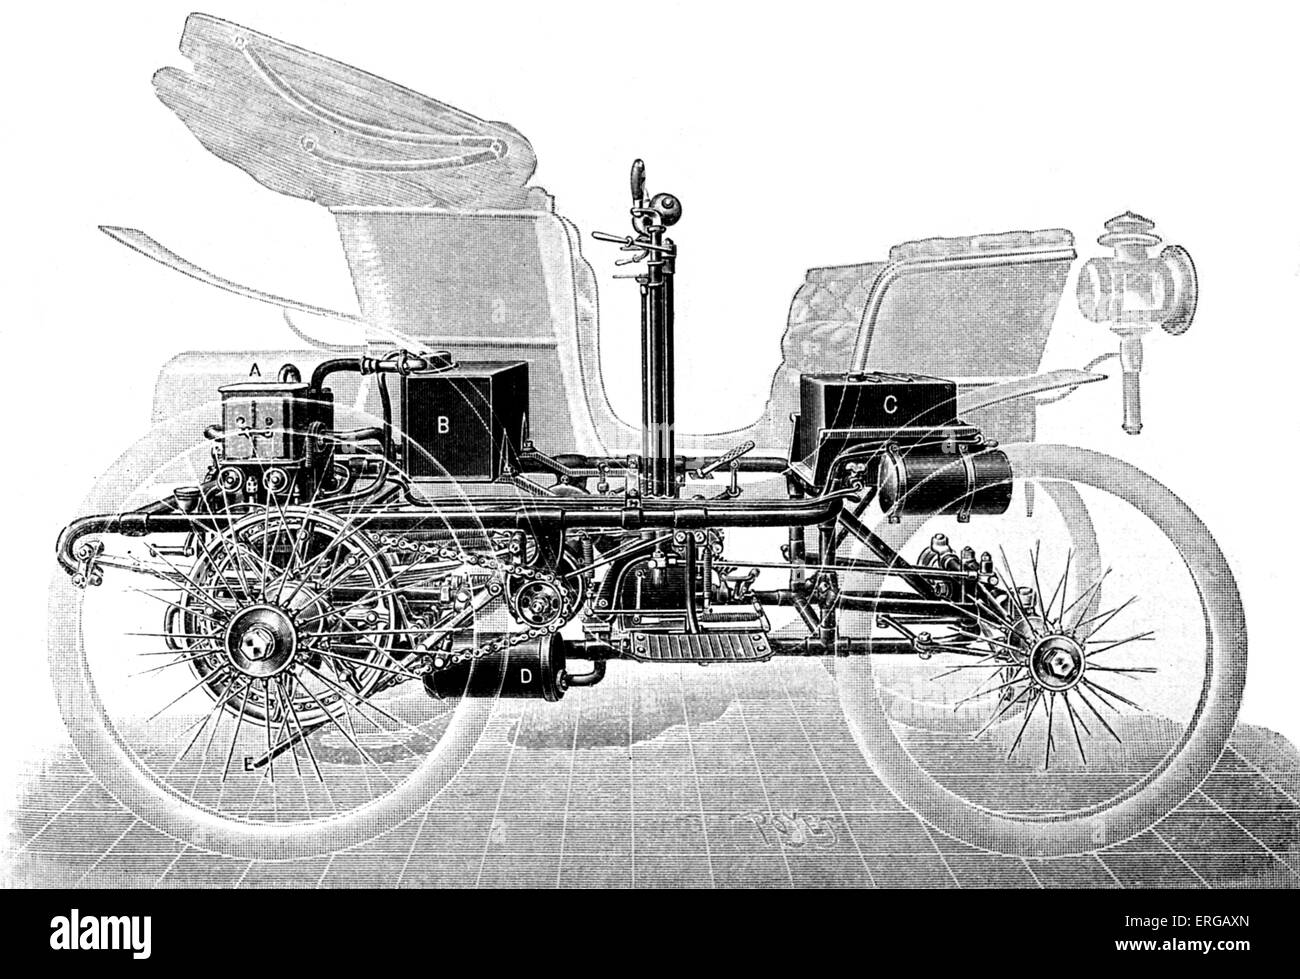 Rochet car with rear engine, 1896. a) two-cylinder motor,b) water tank for cooling, c) petrol tank, d) exhaust pipe. - Stock Image